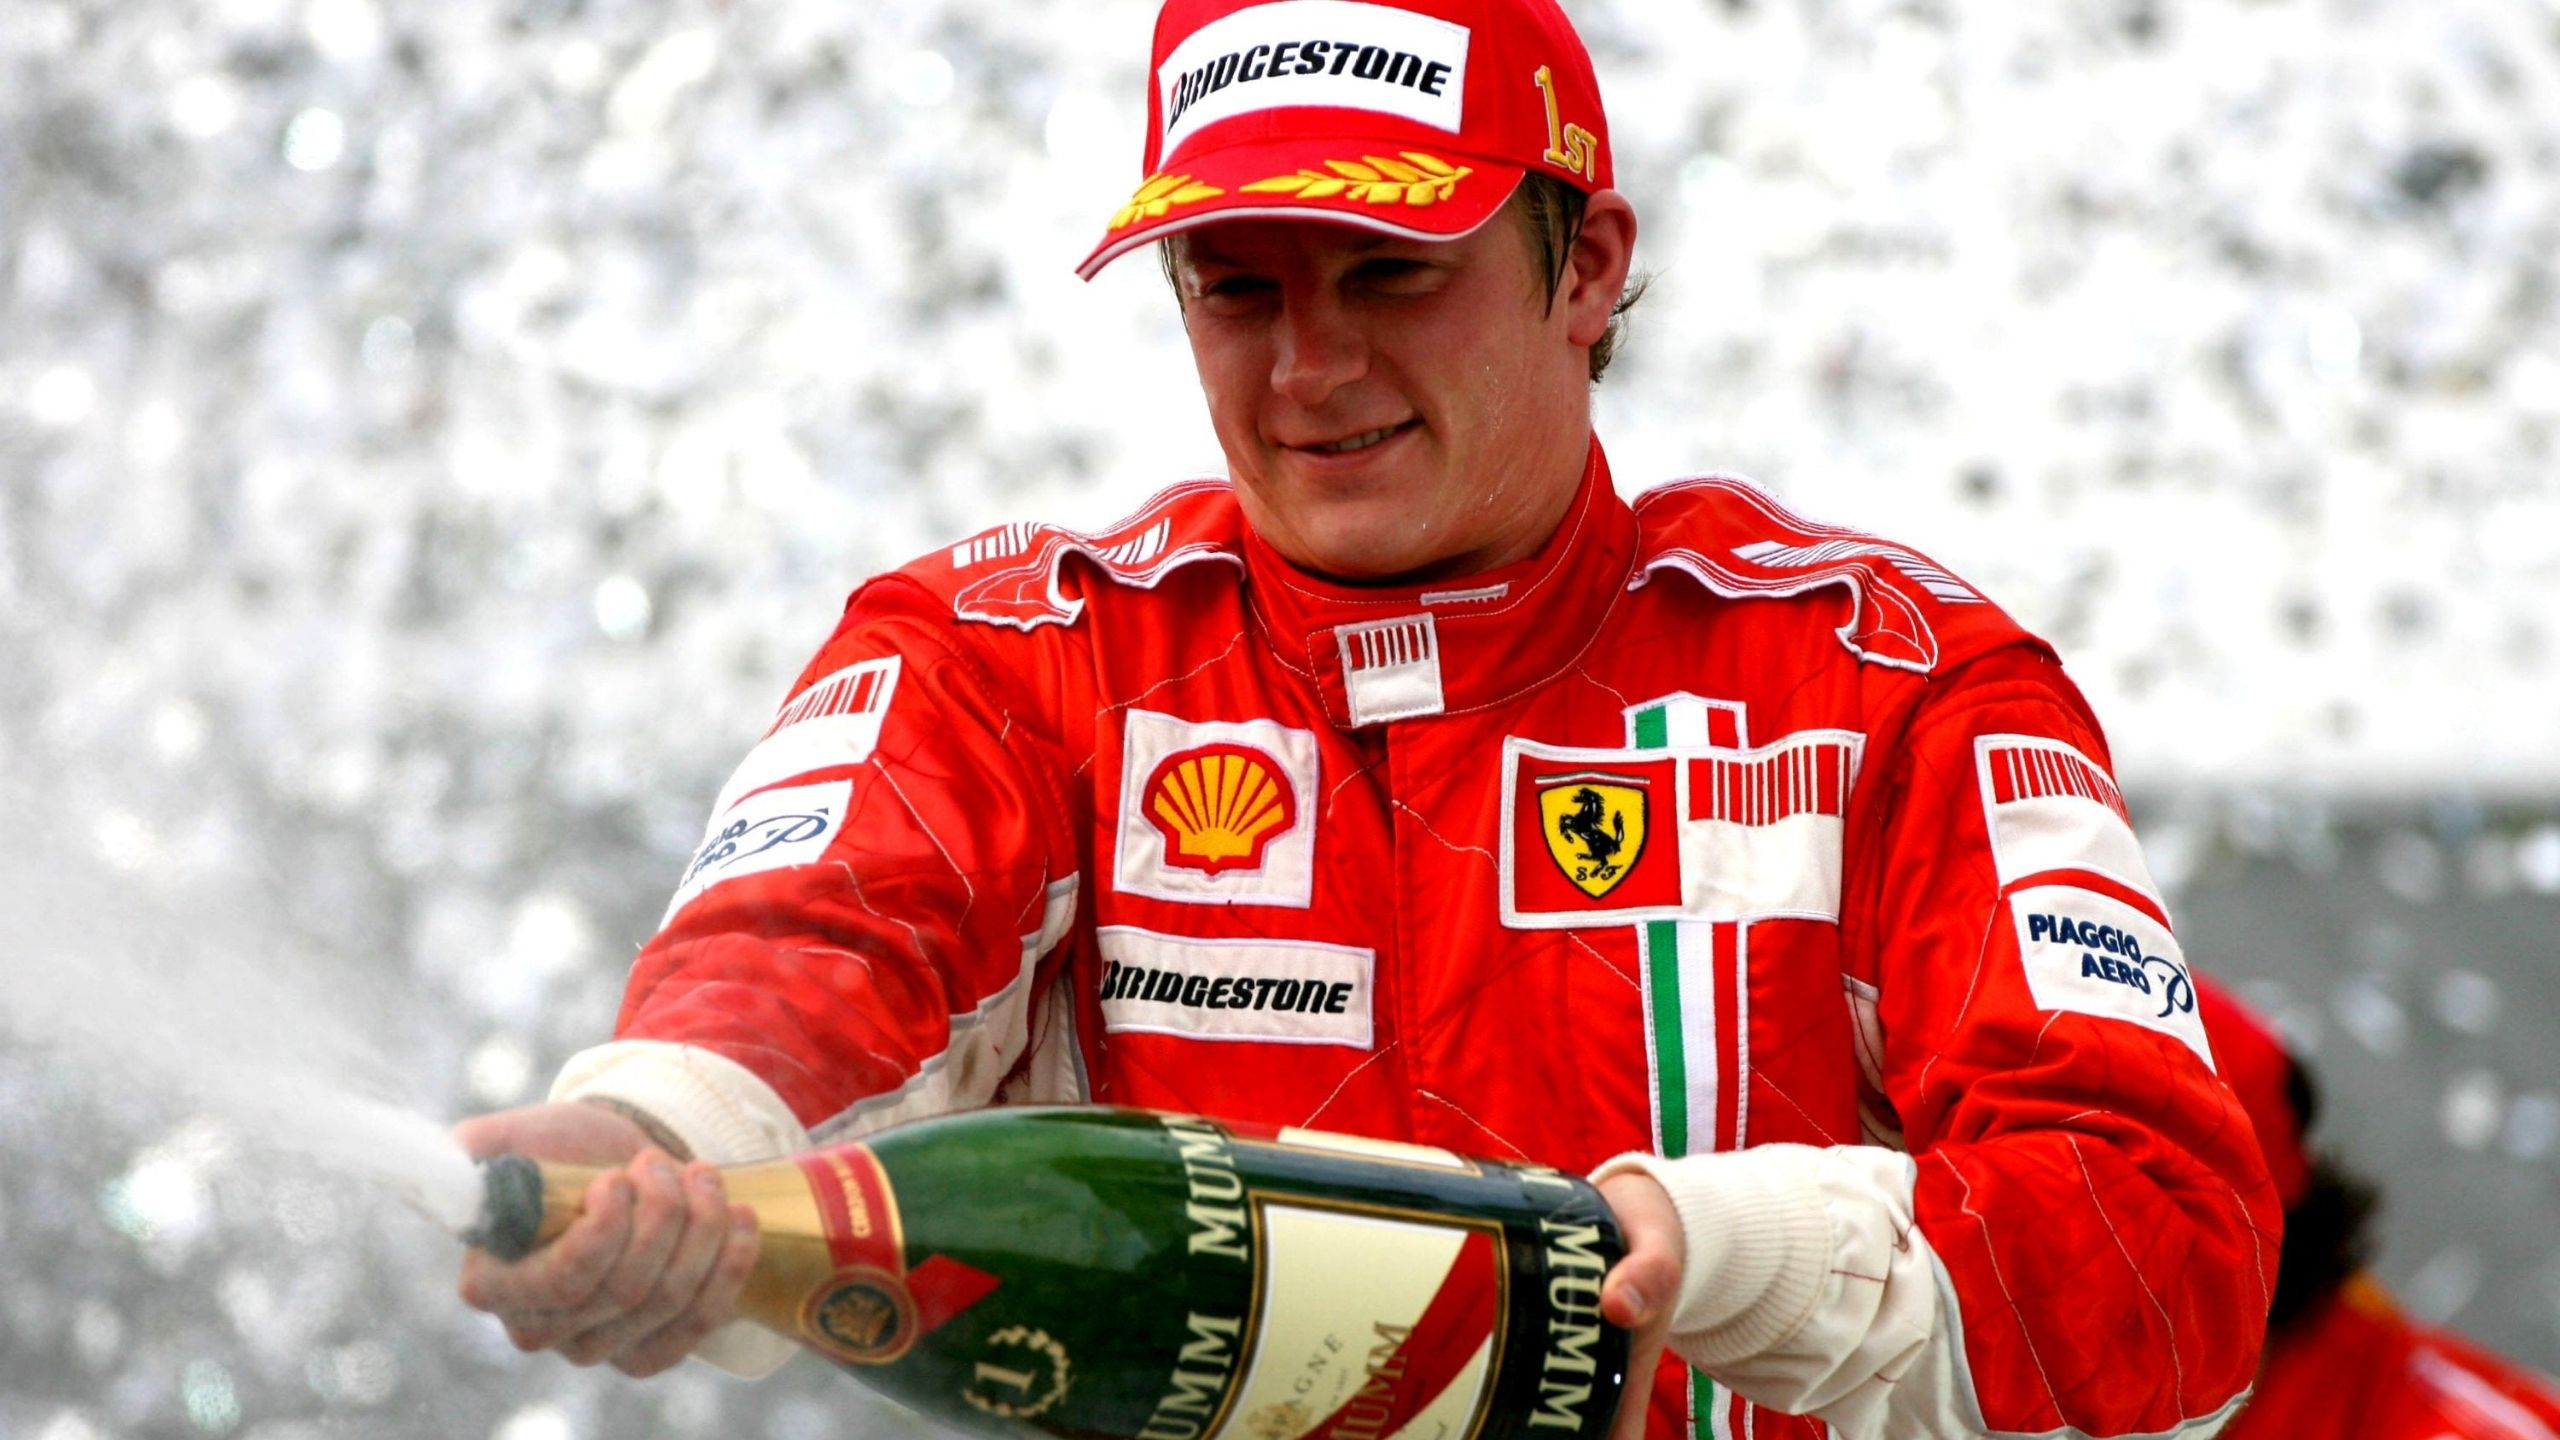 When can Ferrari return to prominence in Formula 1, and end Mercedes unprecedented dominance?